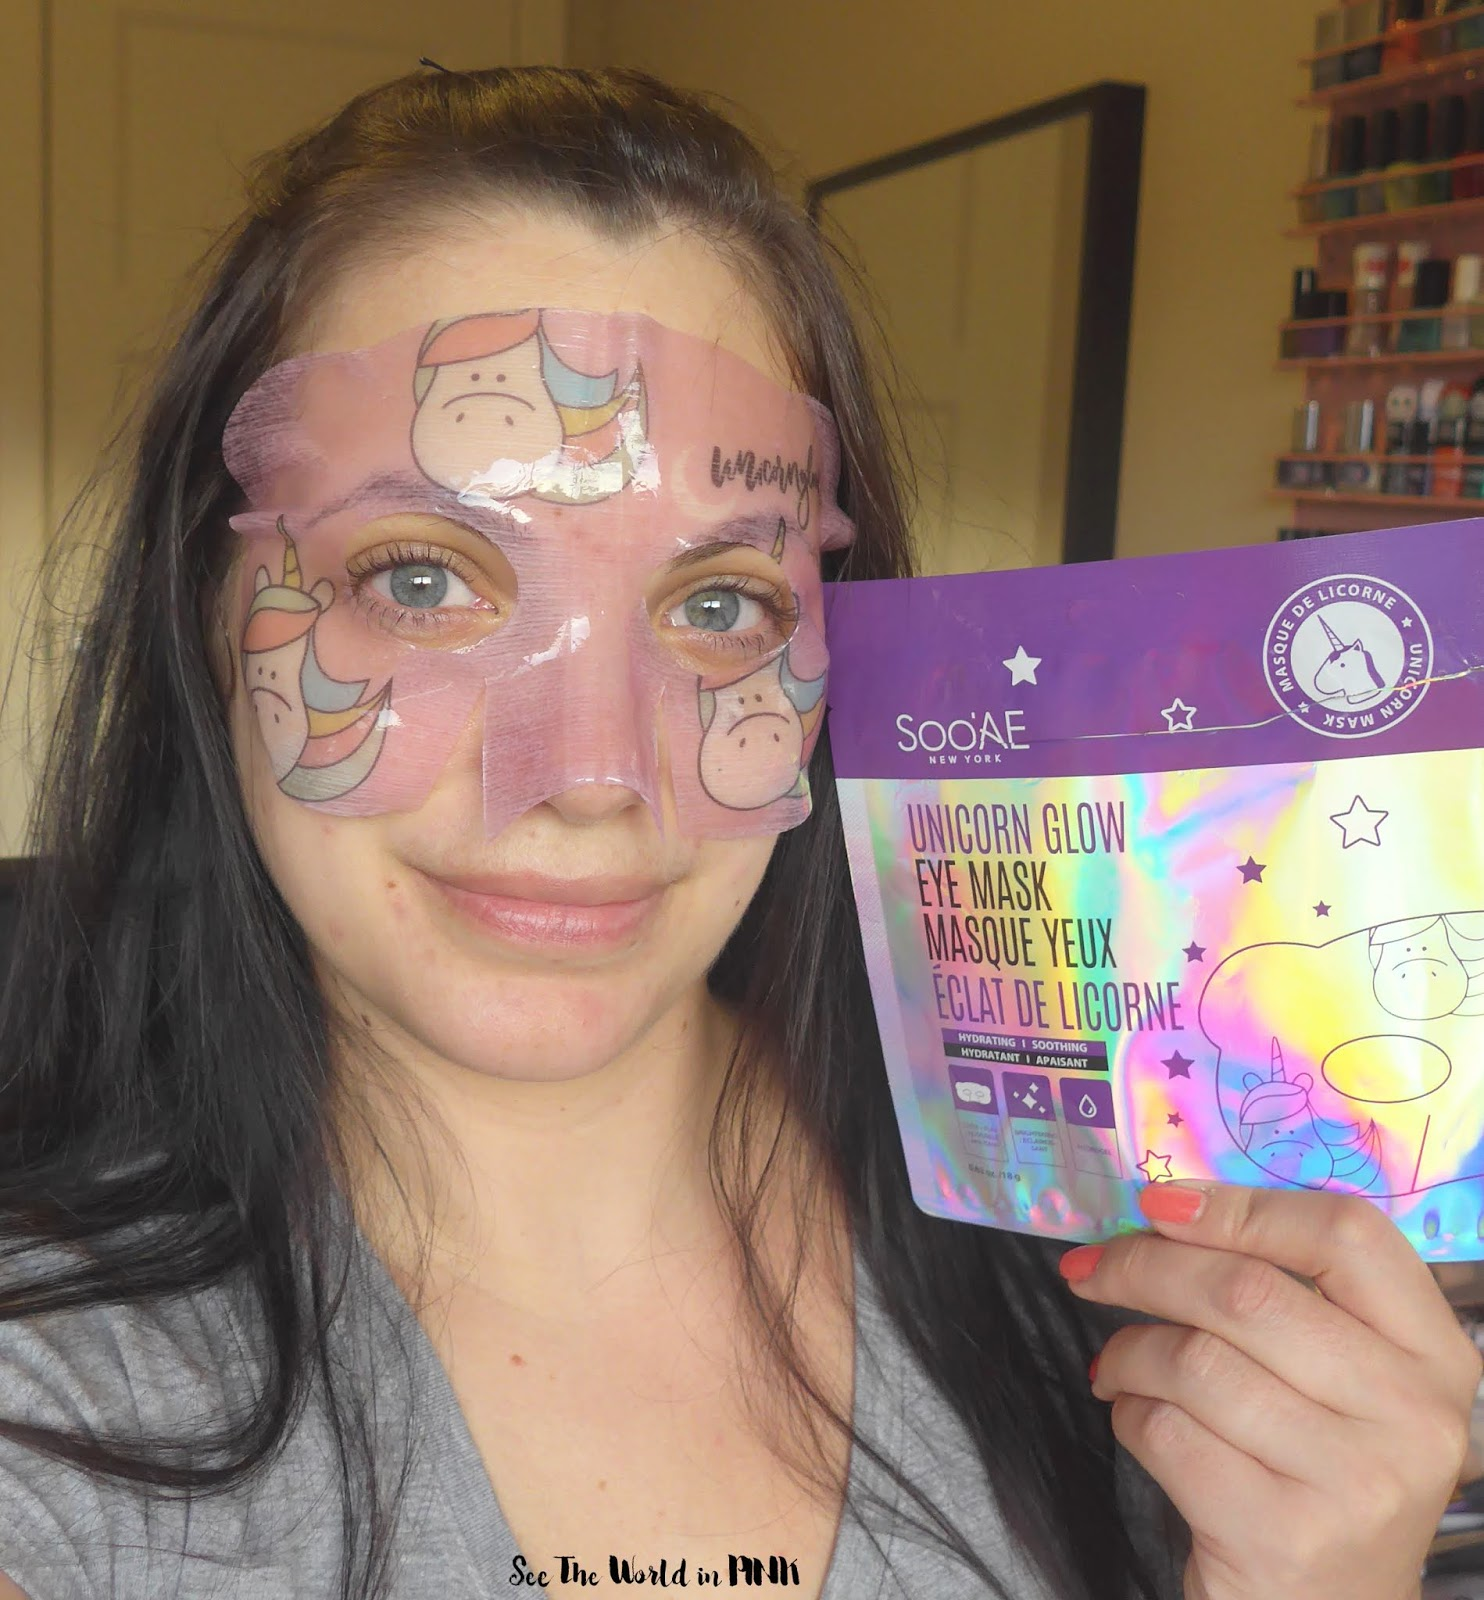 Skincare Sunday - SooAe Unicorn Glow Eye Mask